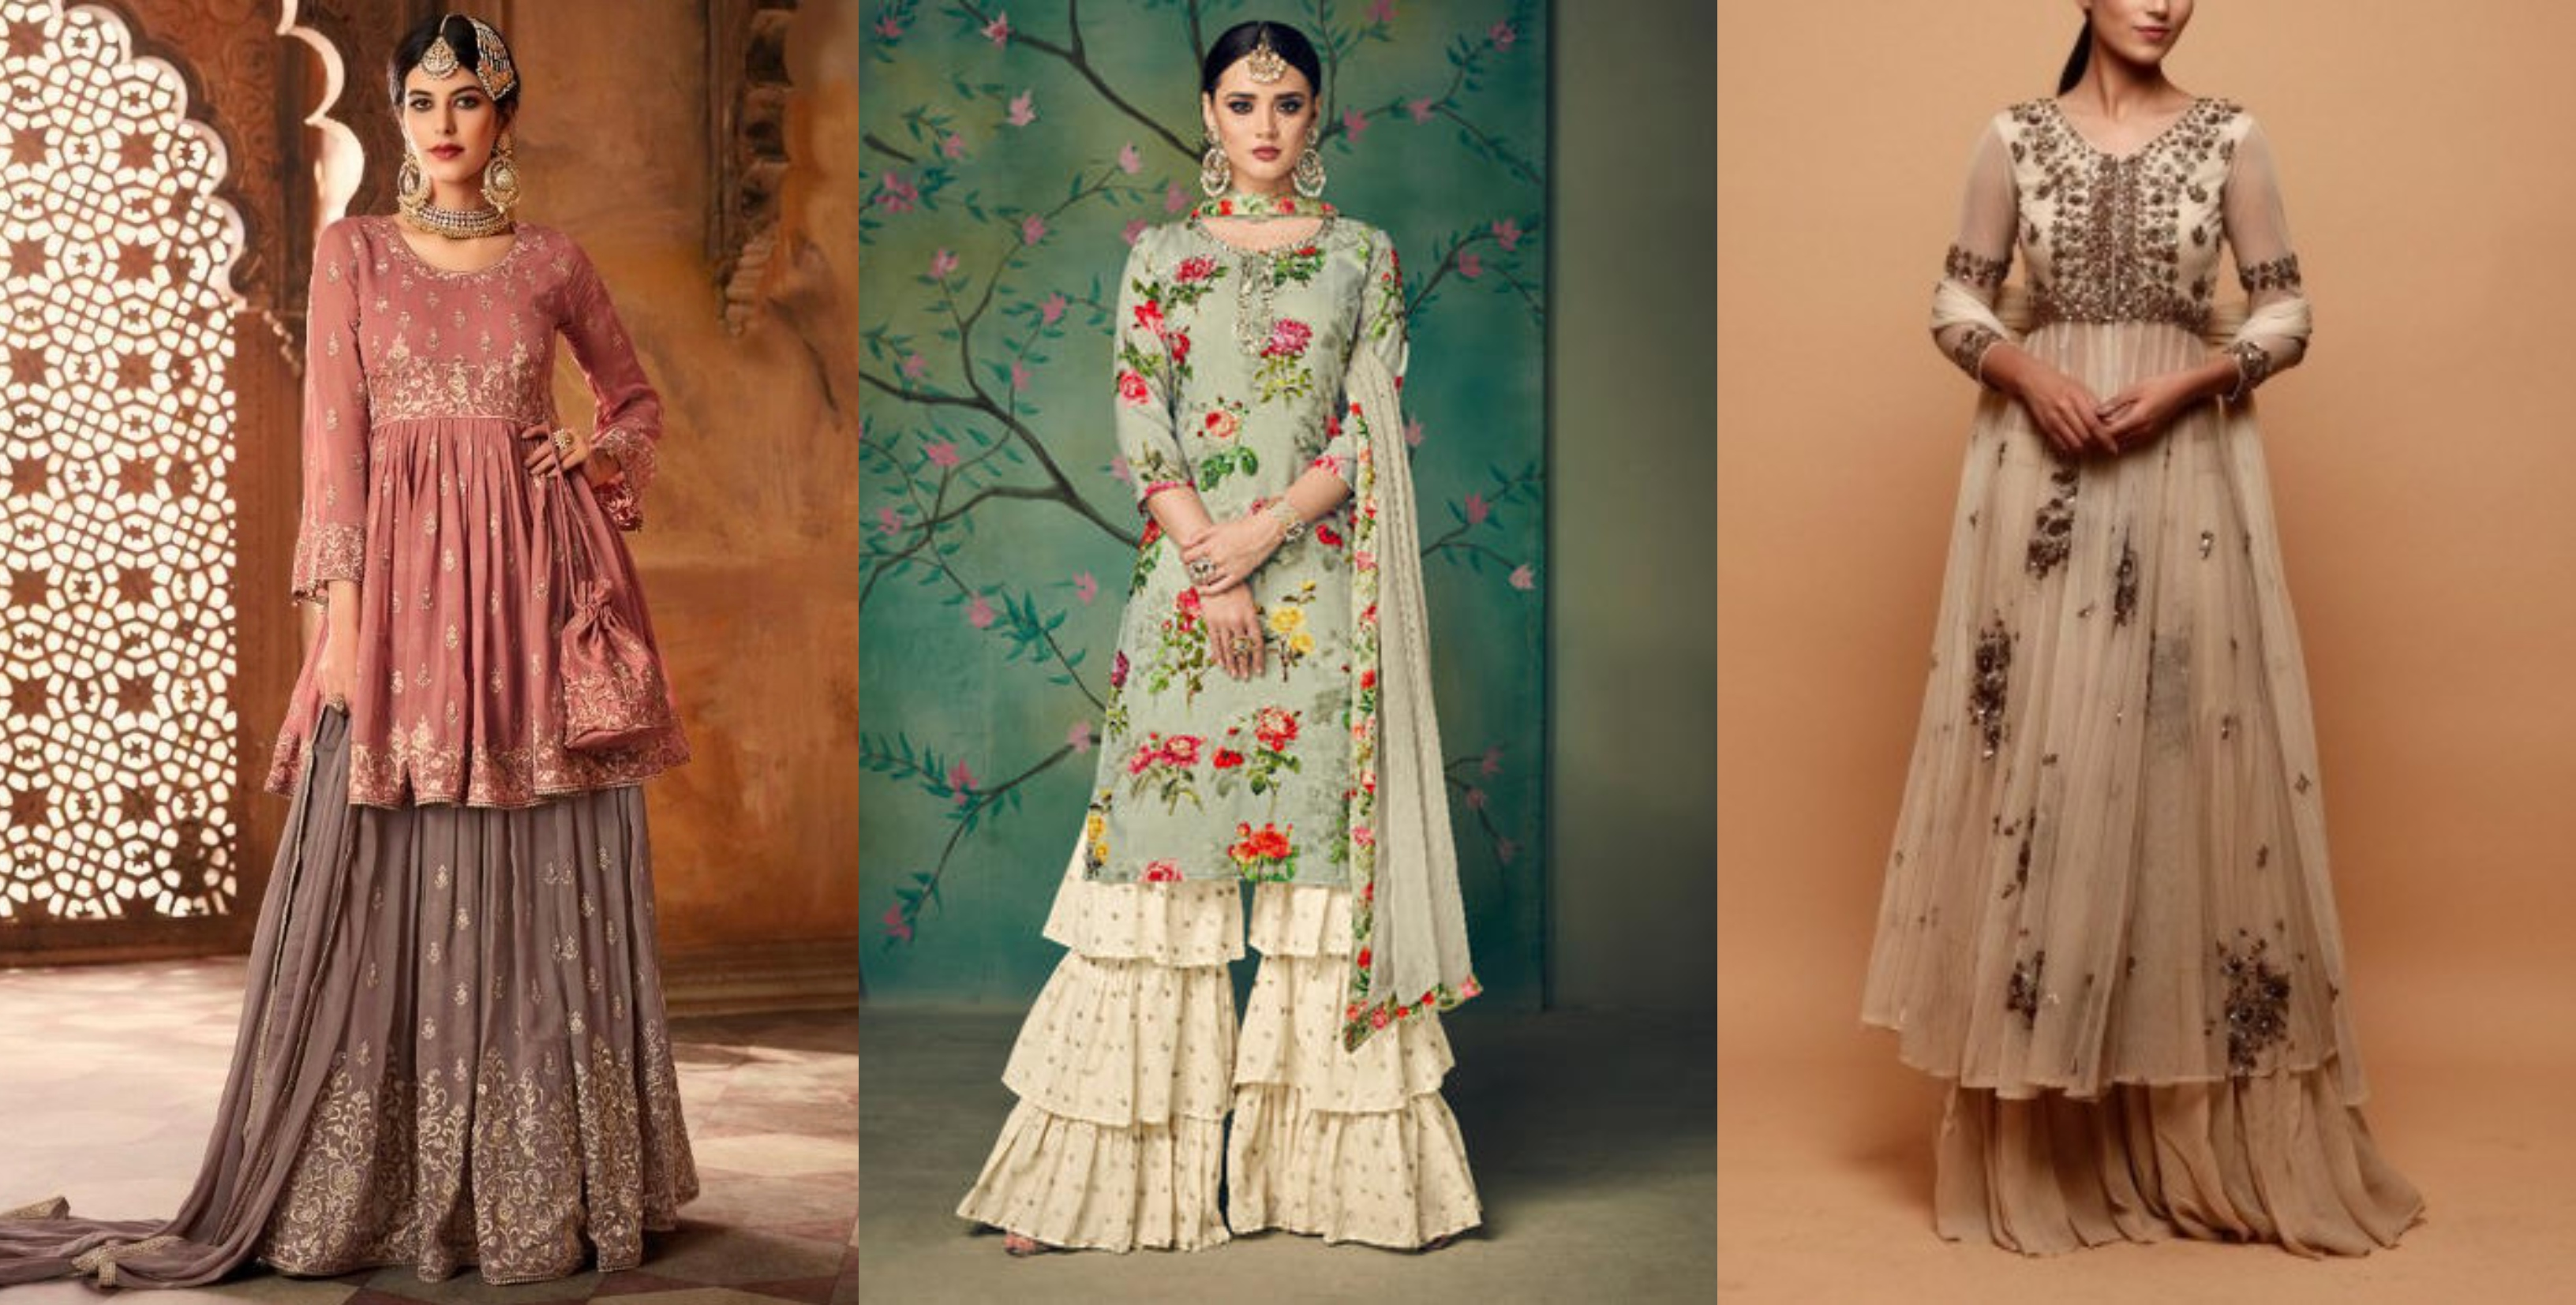 Sharara Suit Latest Style For Eid 2020 – G3+ Fashion